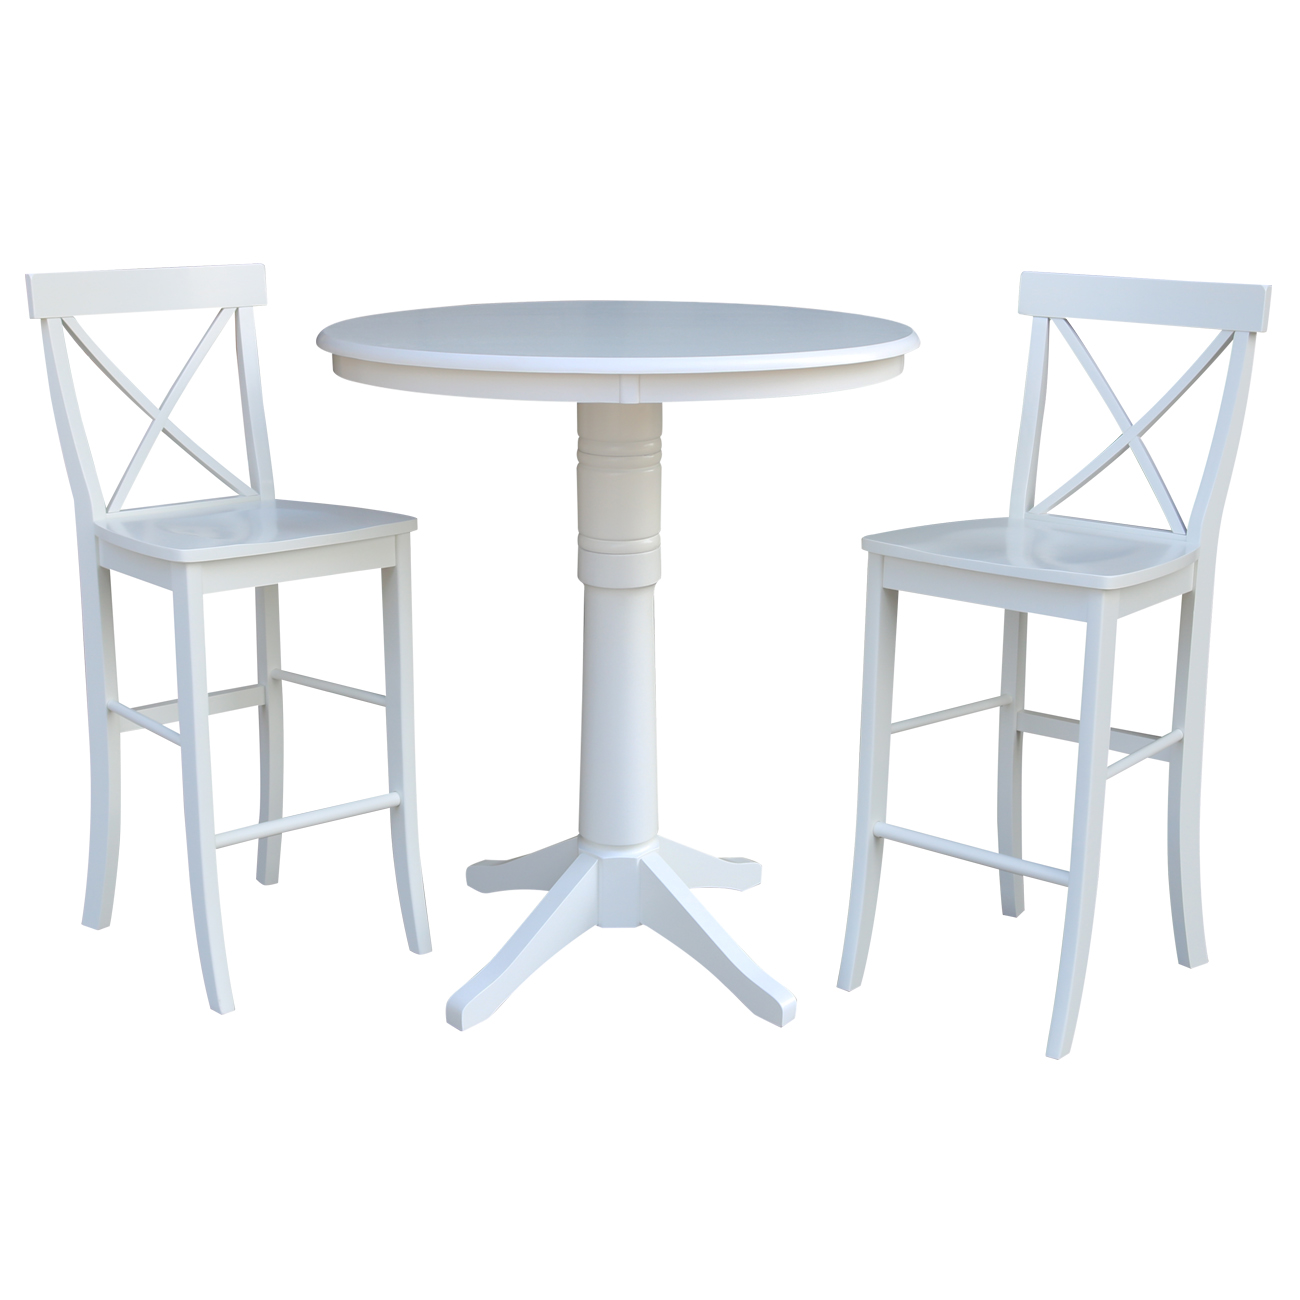 """36"""" Round Bar Height Table and 2 X-back Stools - White - 3 Piece Set"""